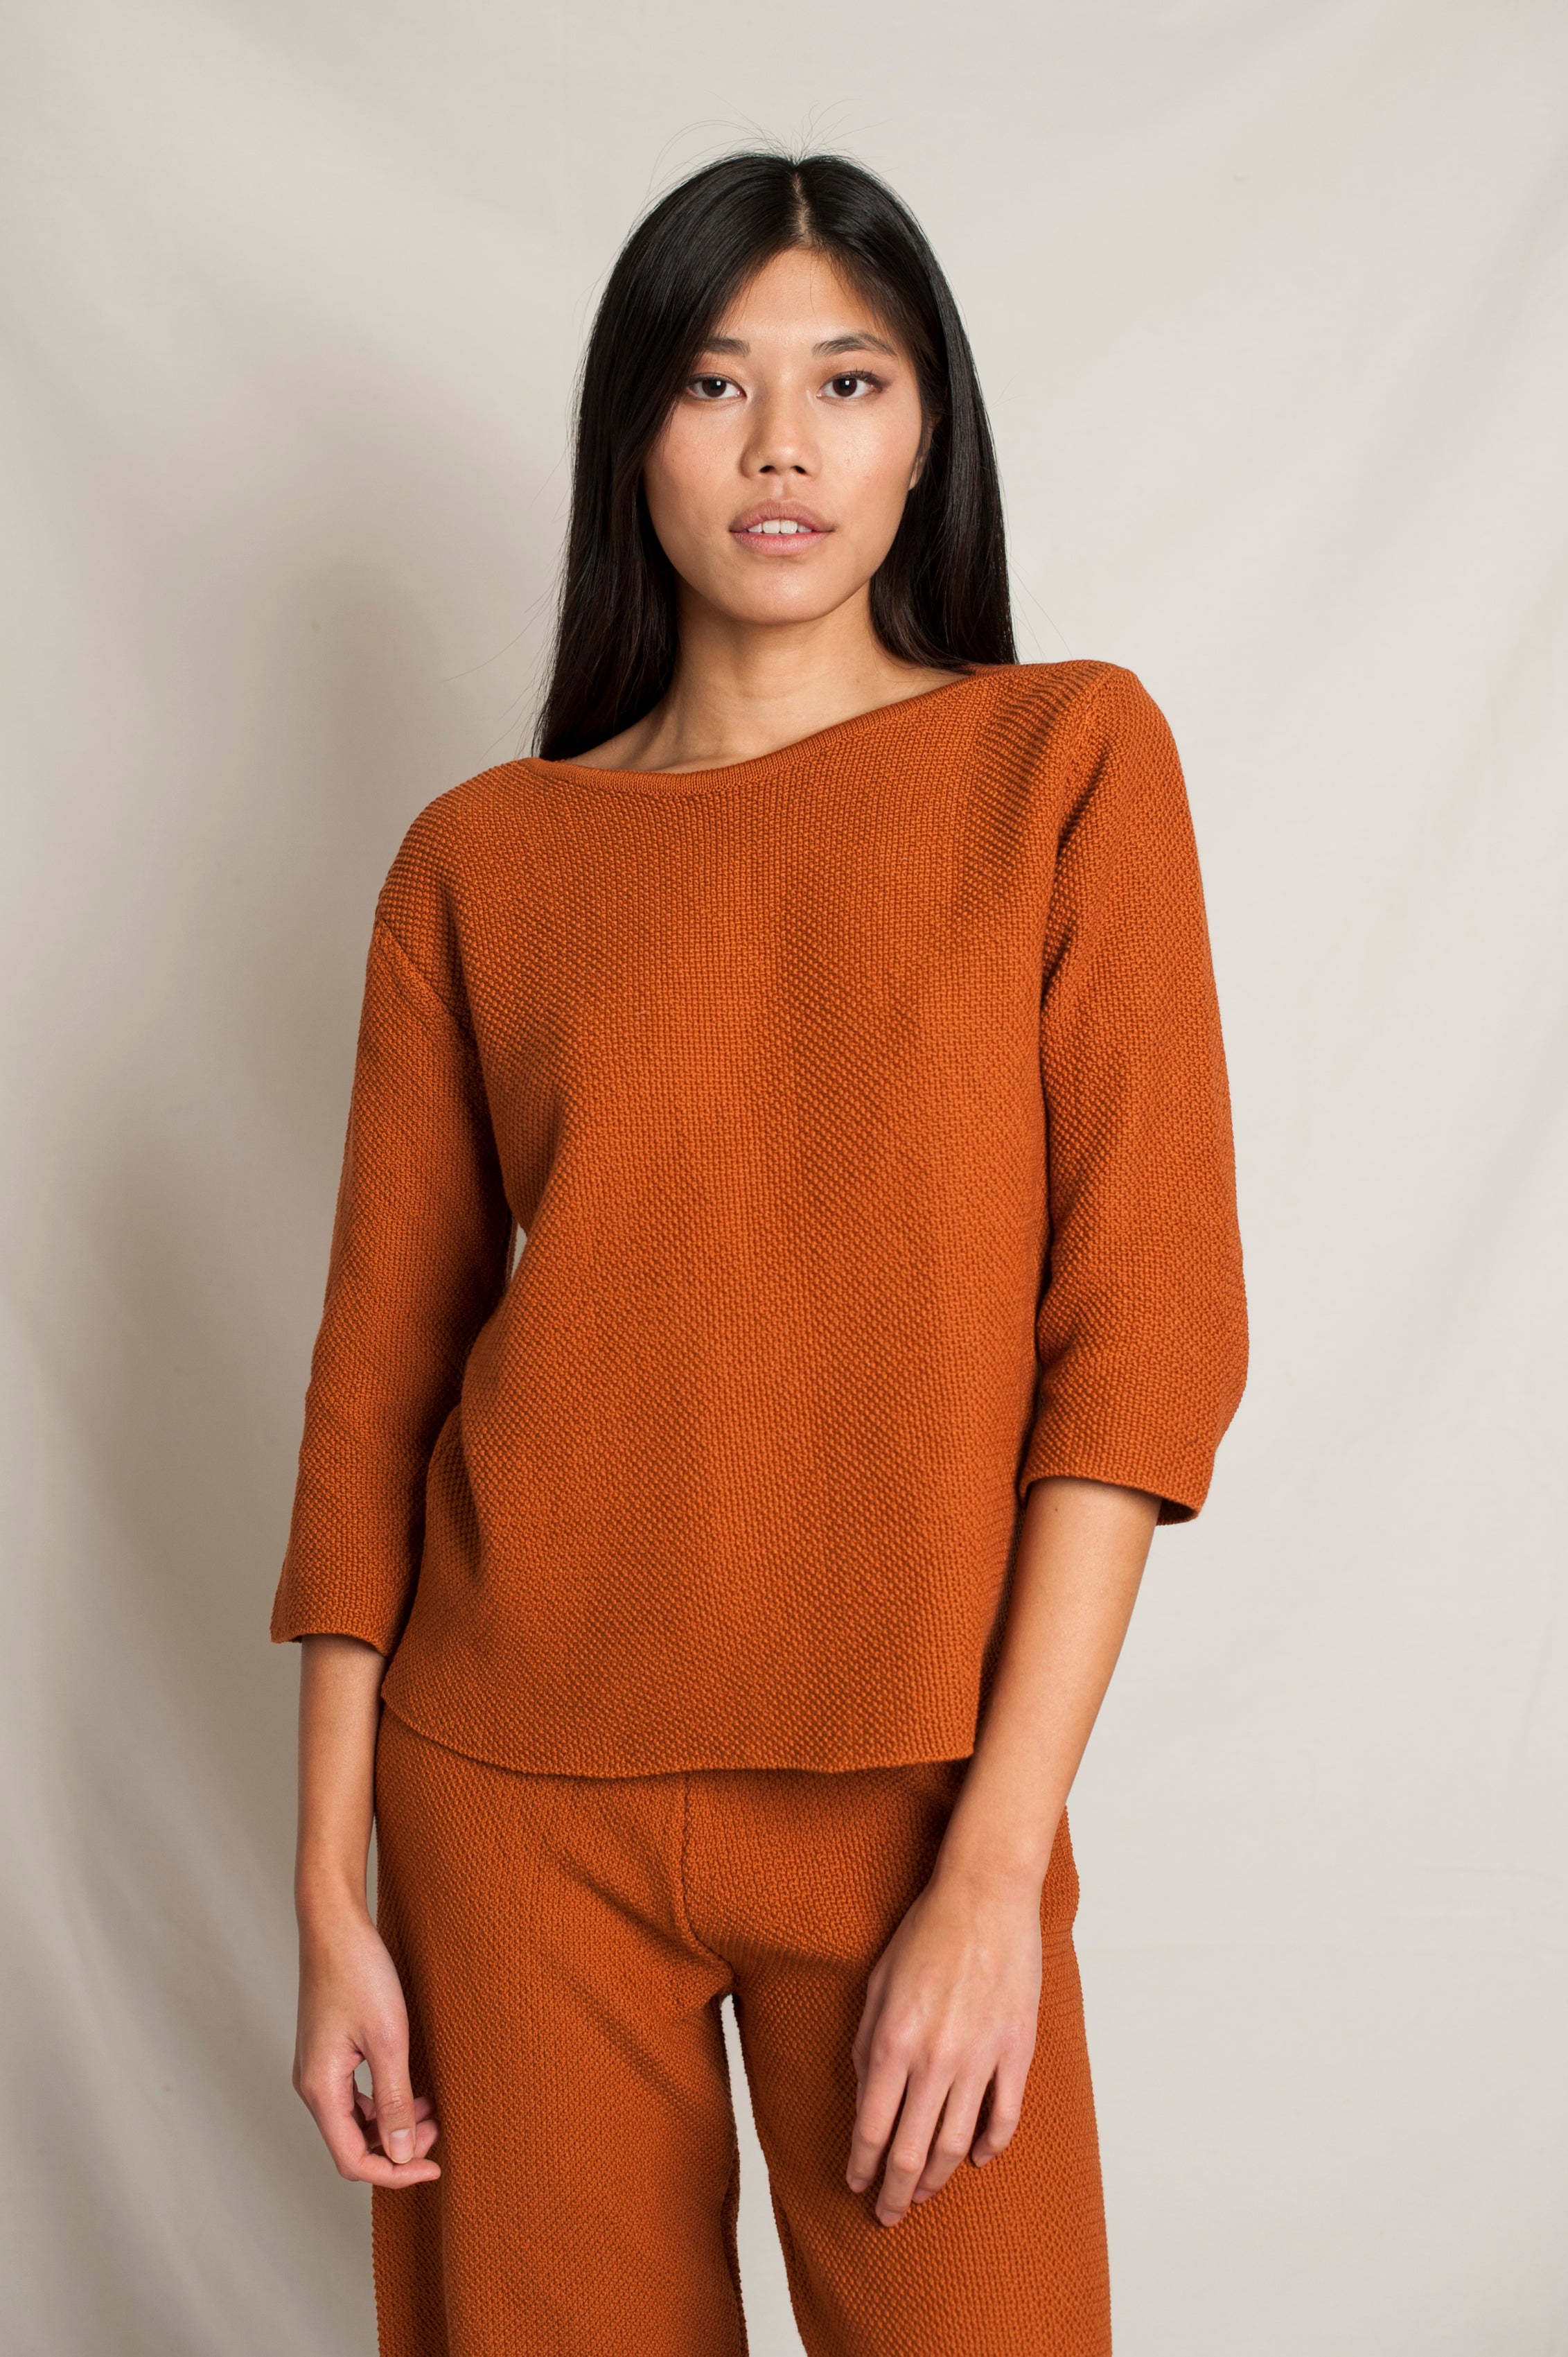 L'Envers - Marguerite Organic Cotton Top - GOTS certificated - Color Ocre - Font Picture